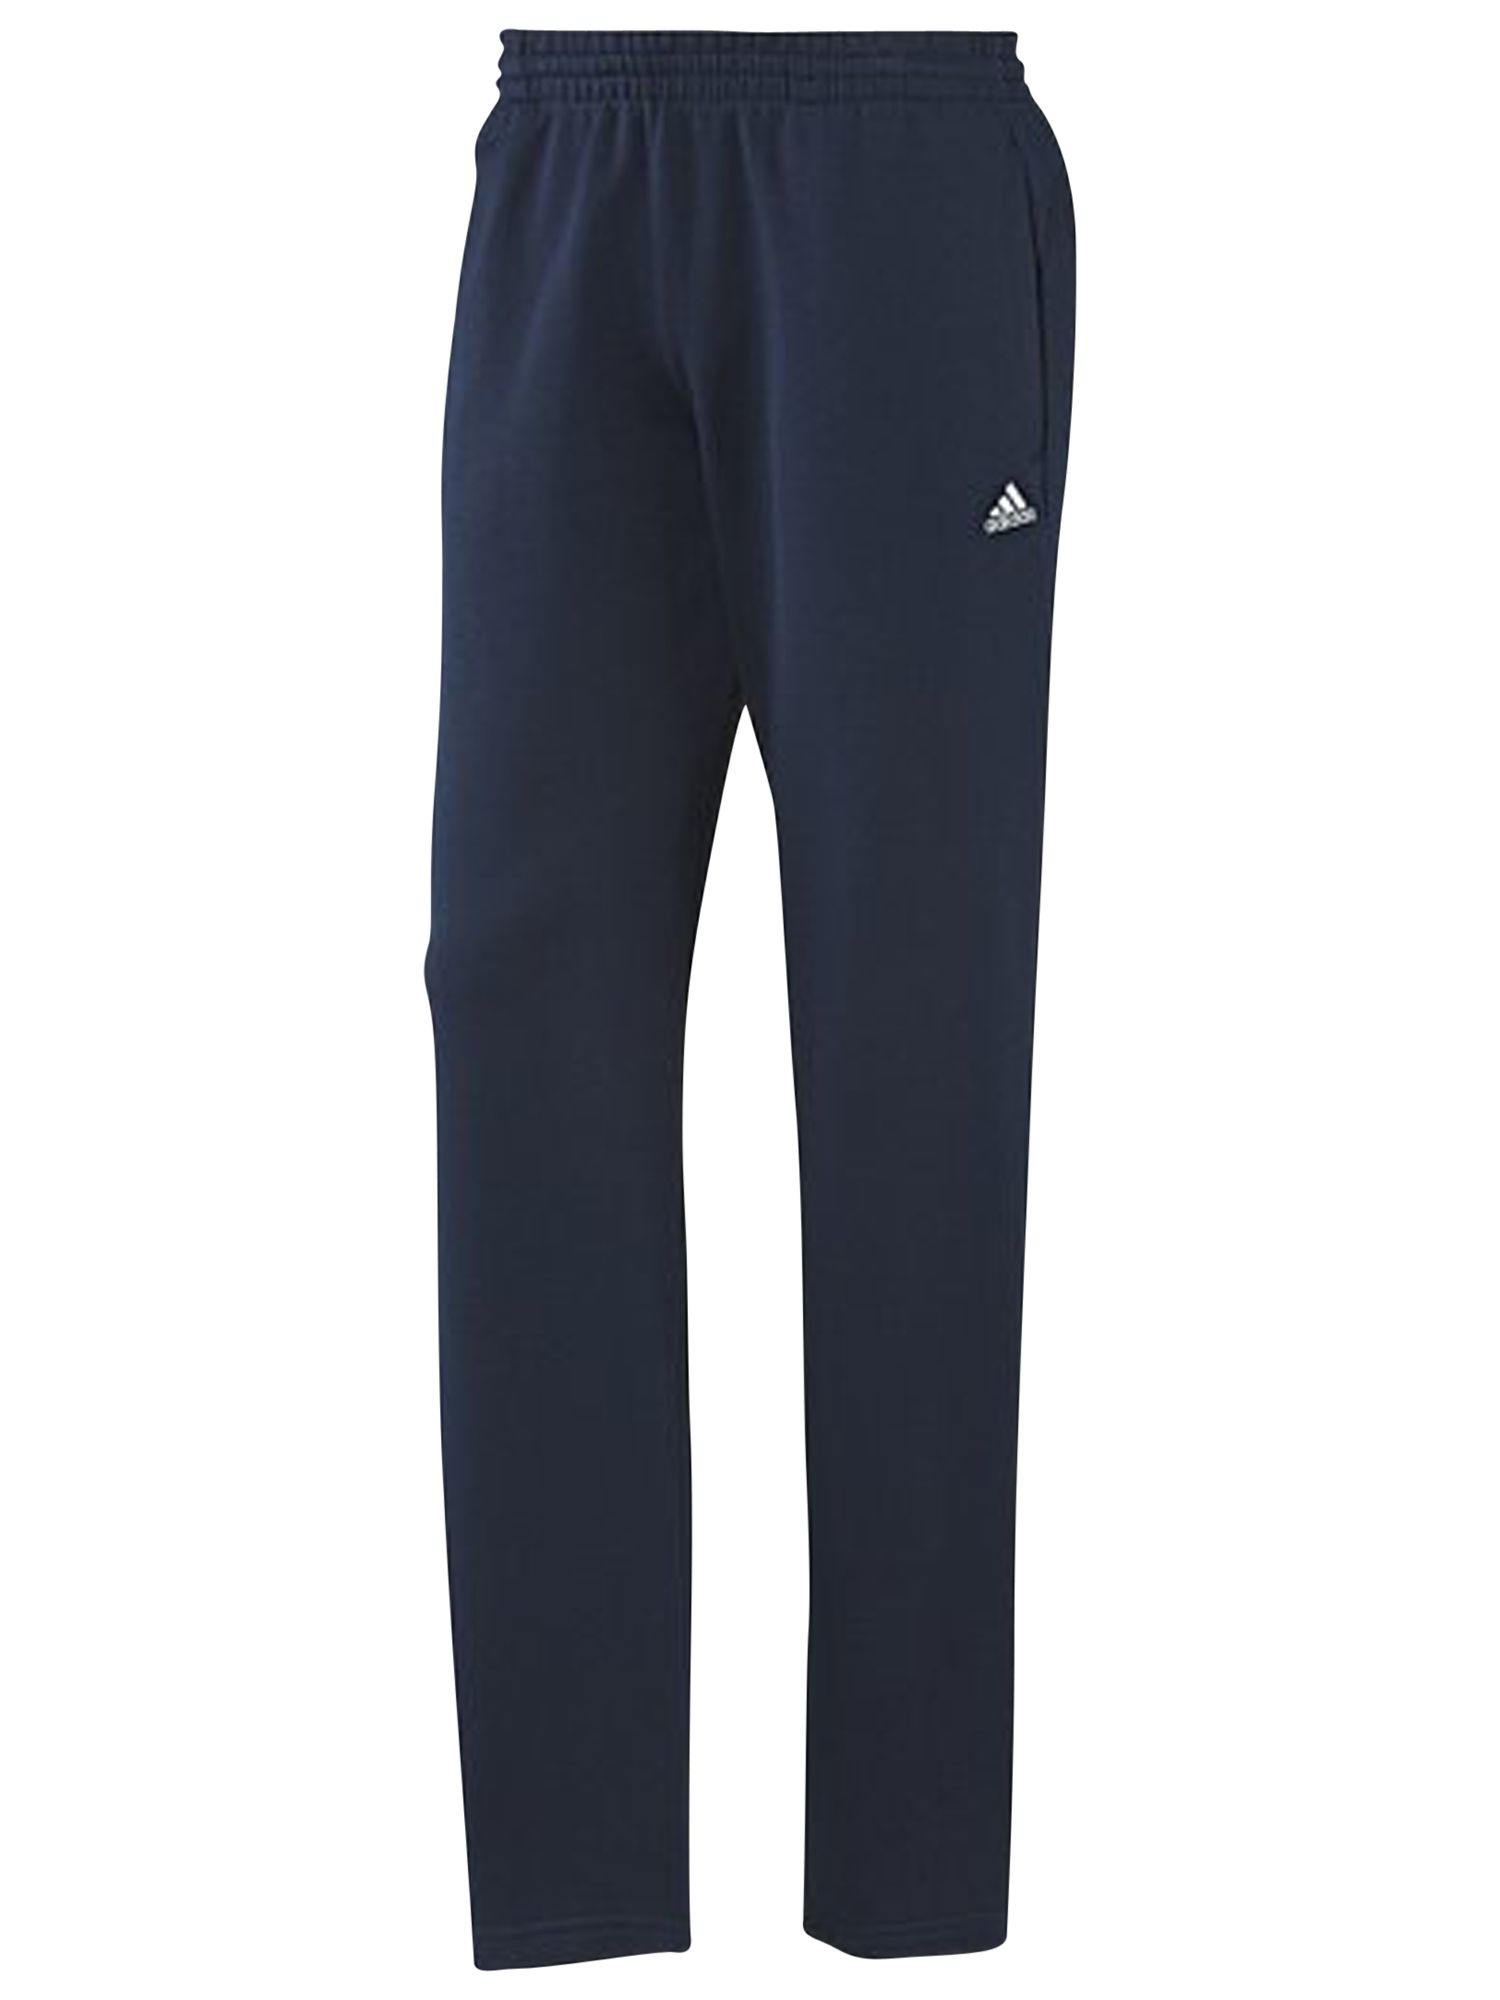 Adidas Essentials Sweatpants, Navy